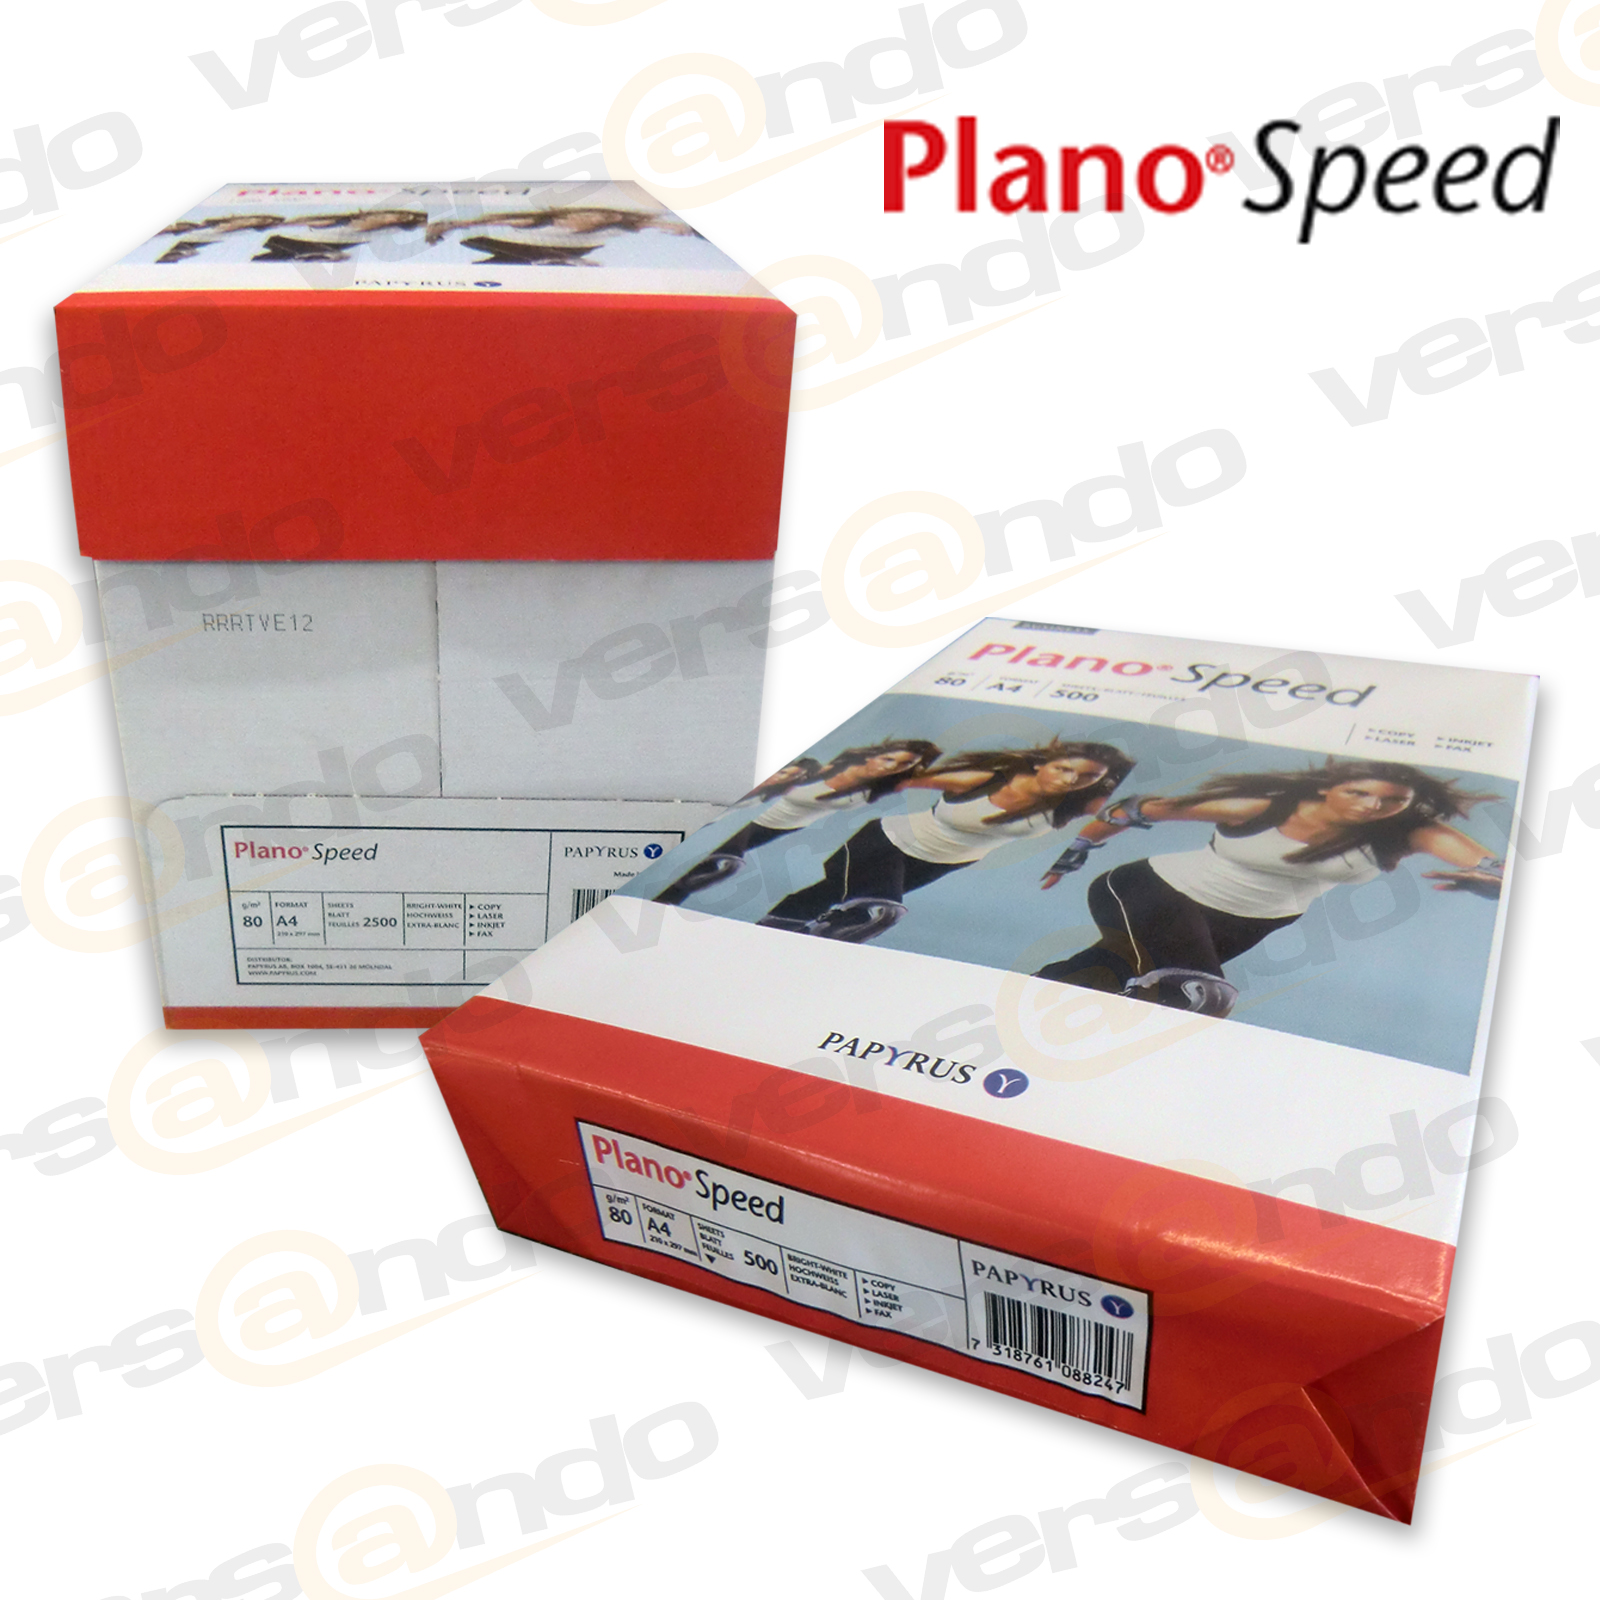 Plano Speed A4 80 g/m²